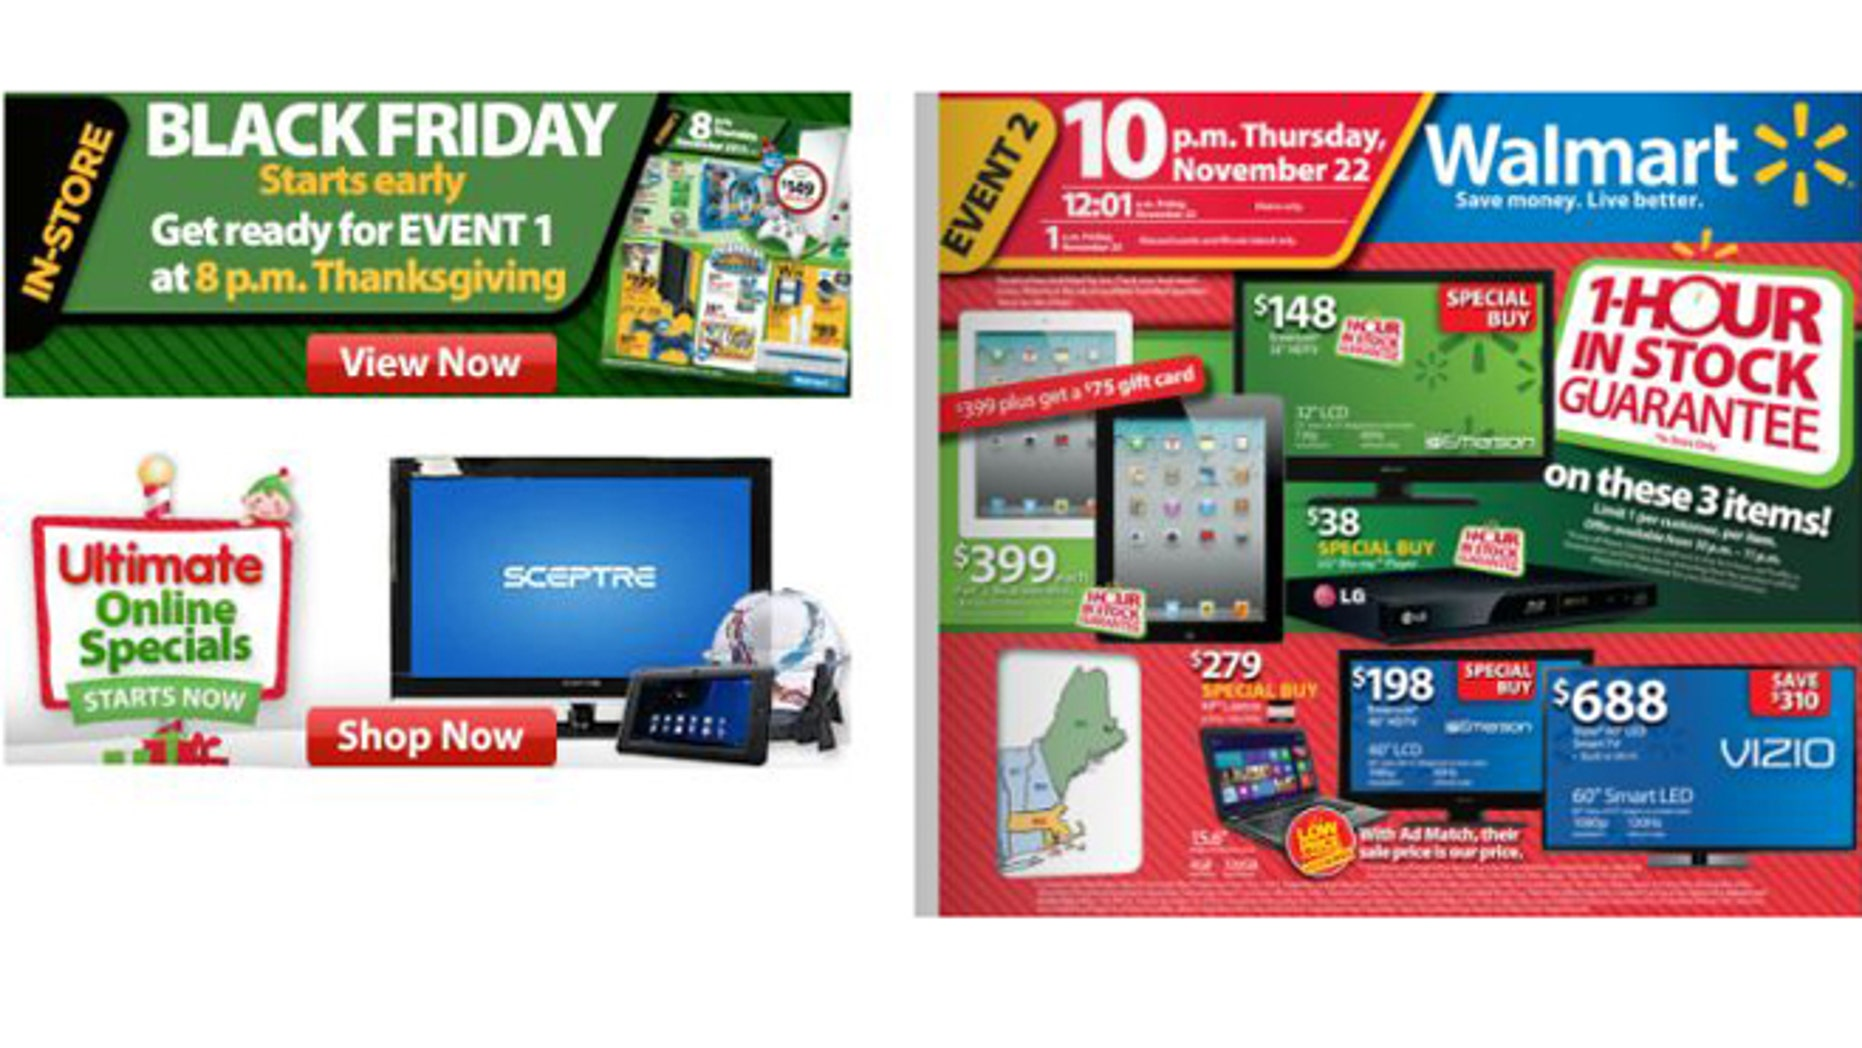 Christmas comes early: Walmart has already revealed the Black Friday deals it plans for Thanksgiving.